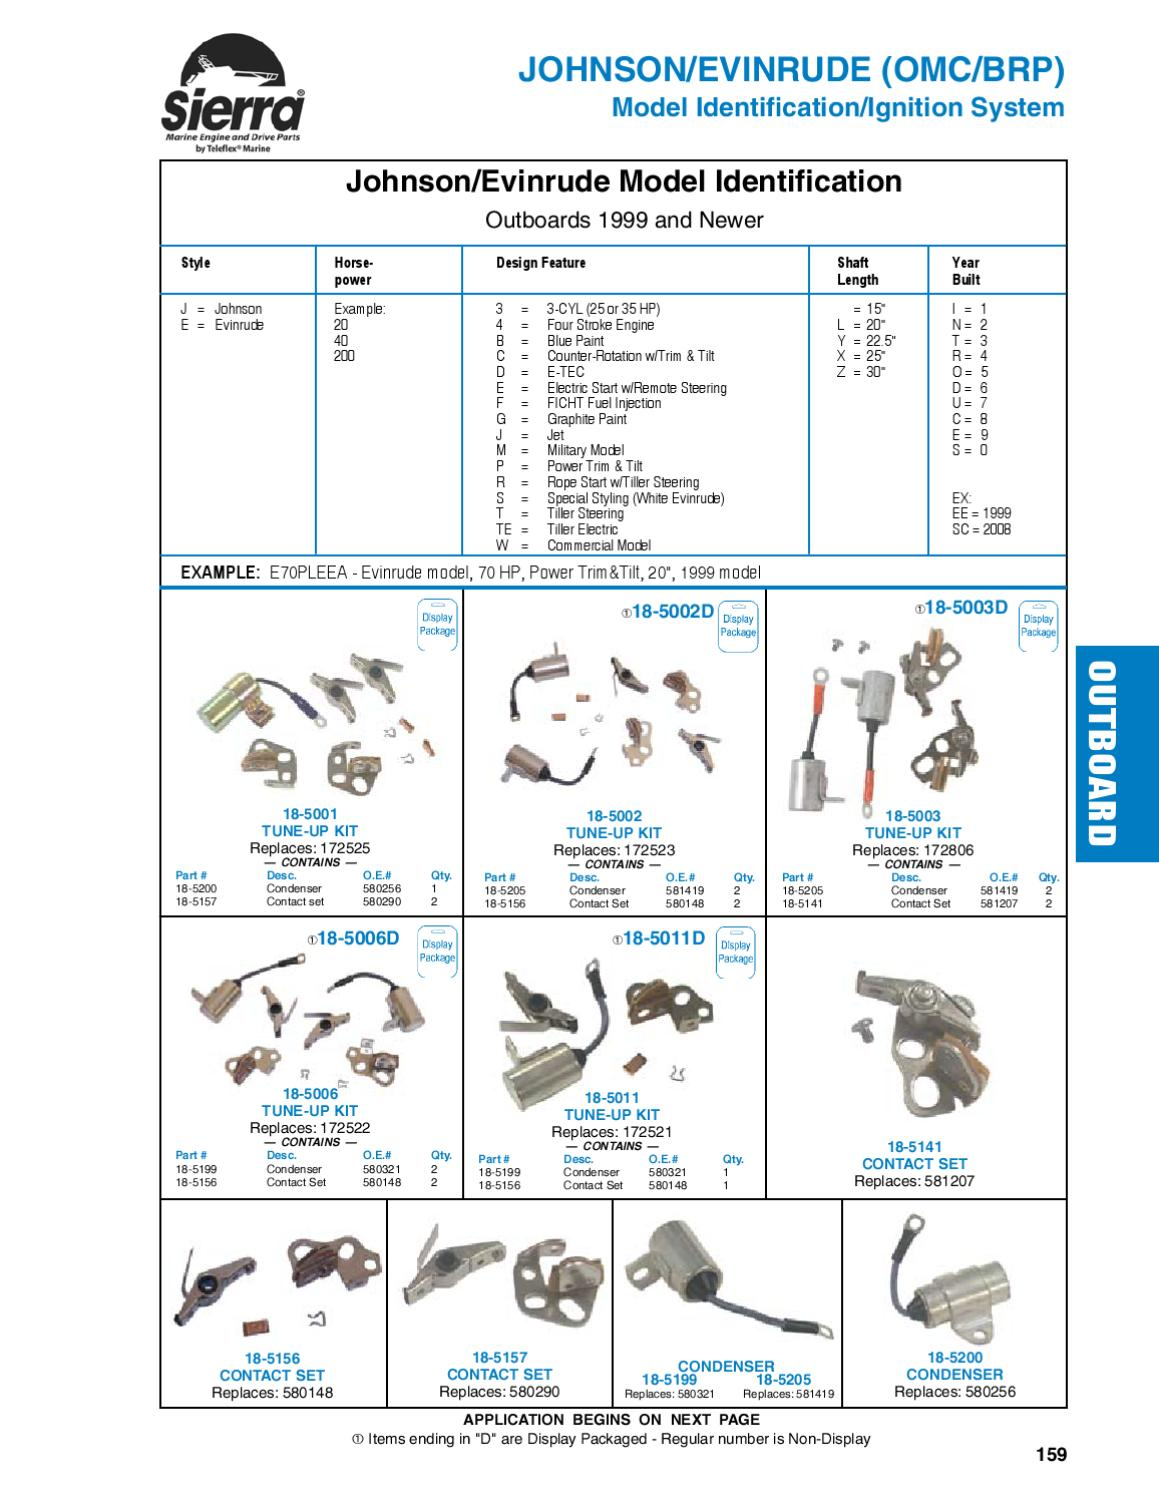 sierra marine engine and drive parts for johnson evinrude outboard applications by anthea webb Power Steering Line Diagram marine power steering hose